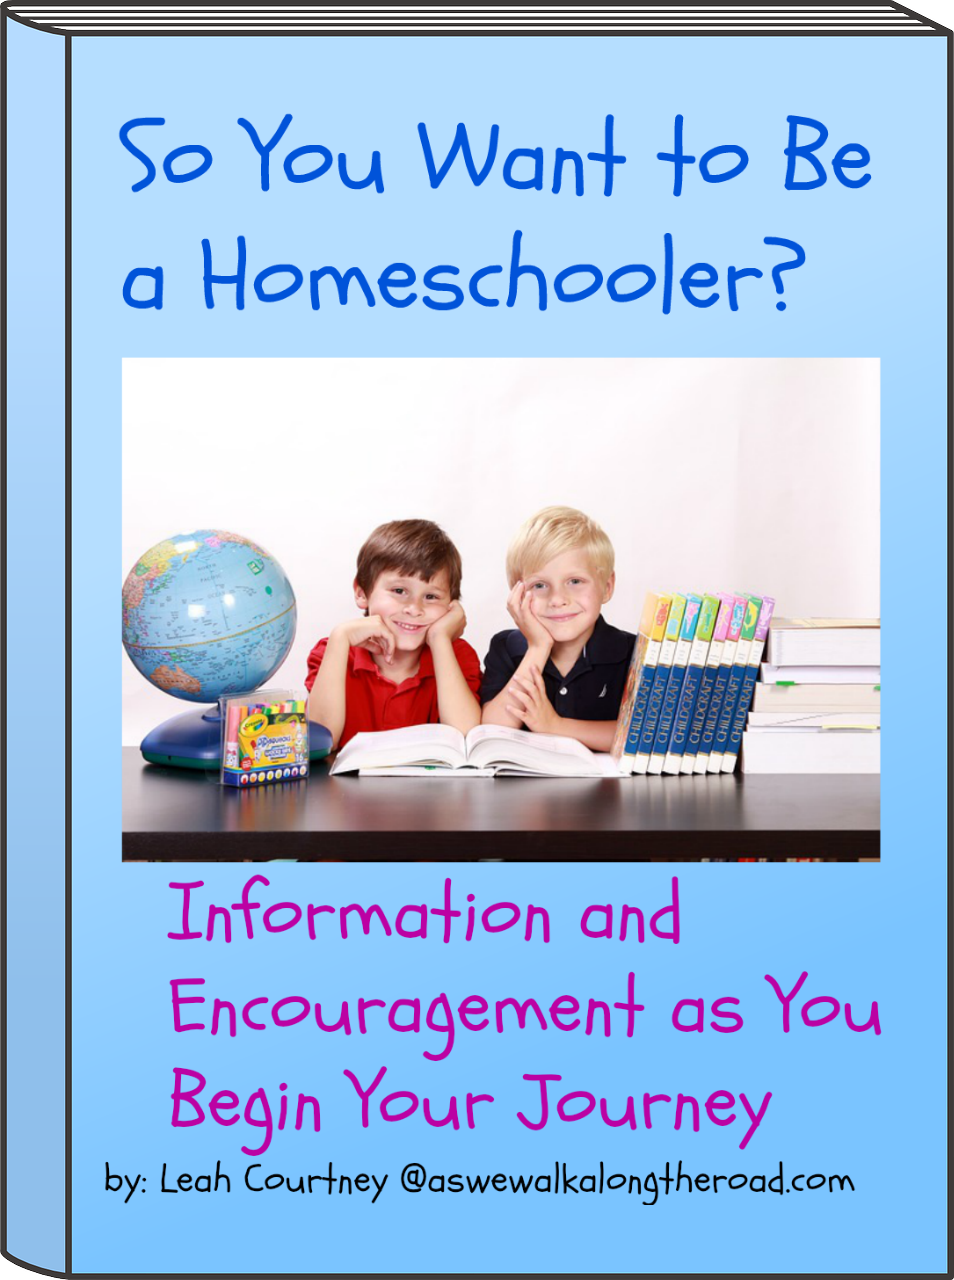 Get Support and Encouragement for Your Homeschooling Journey